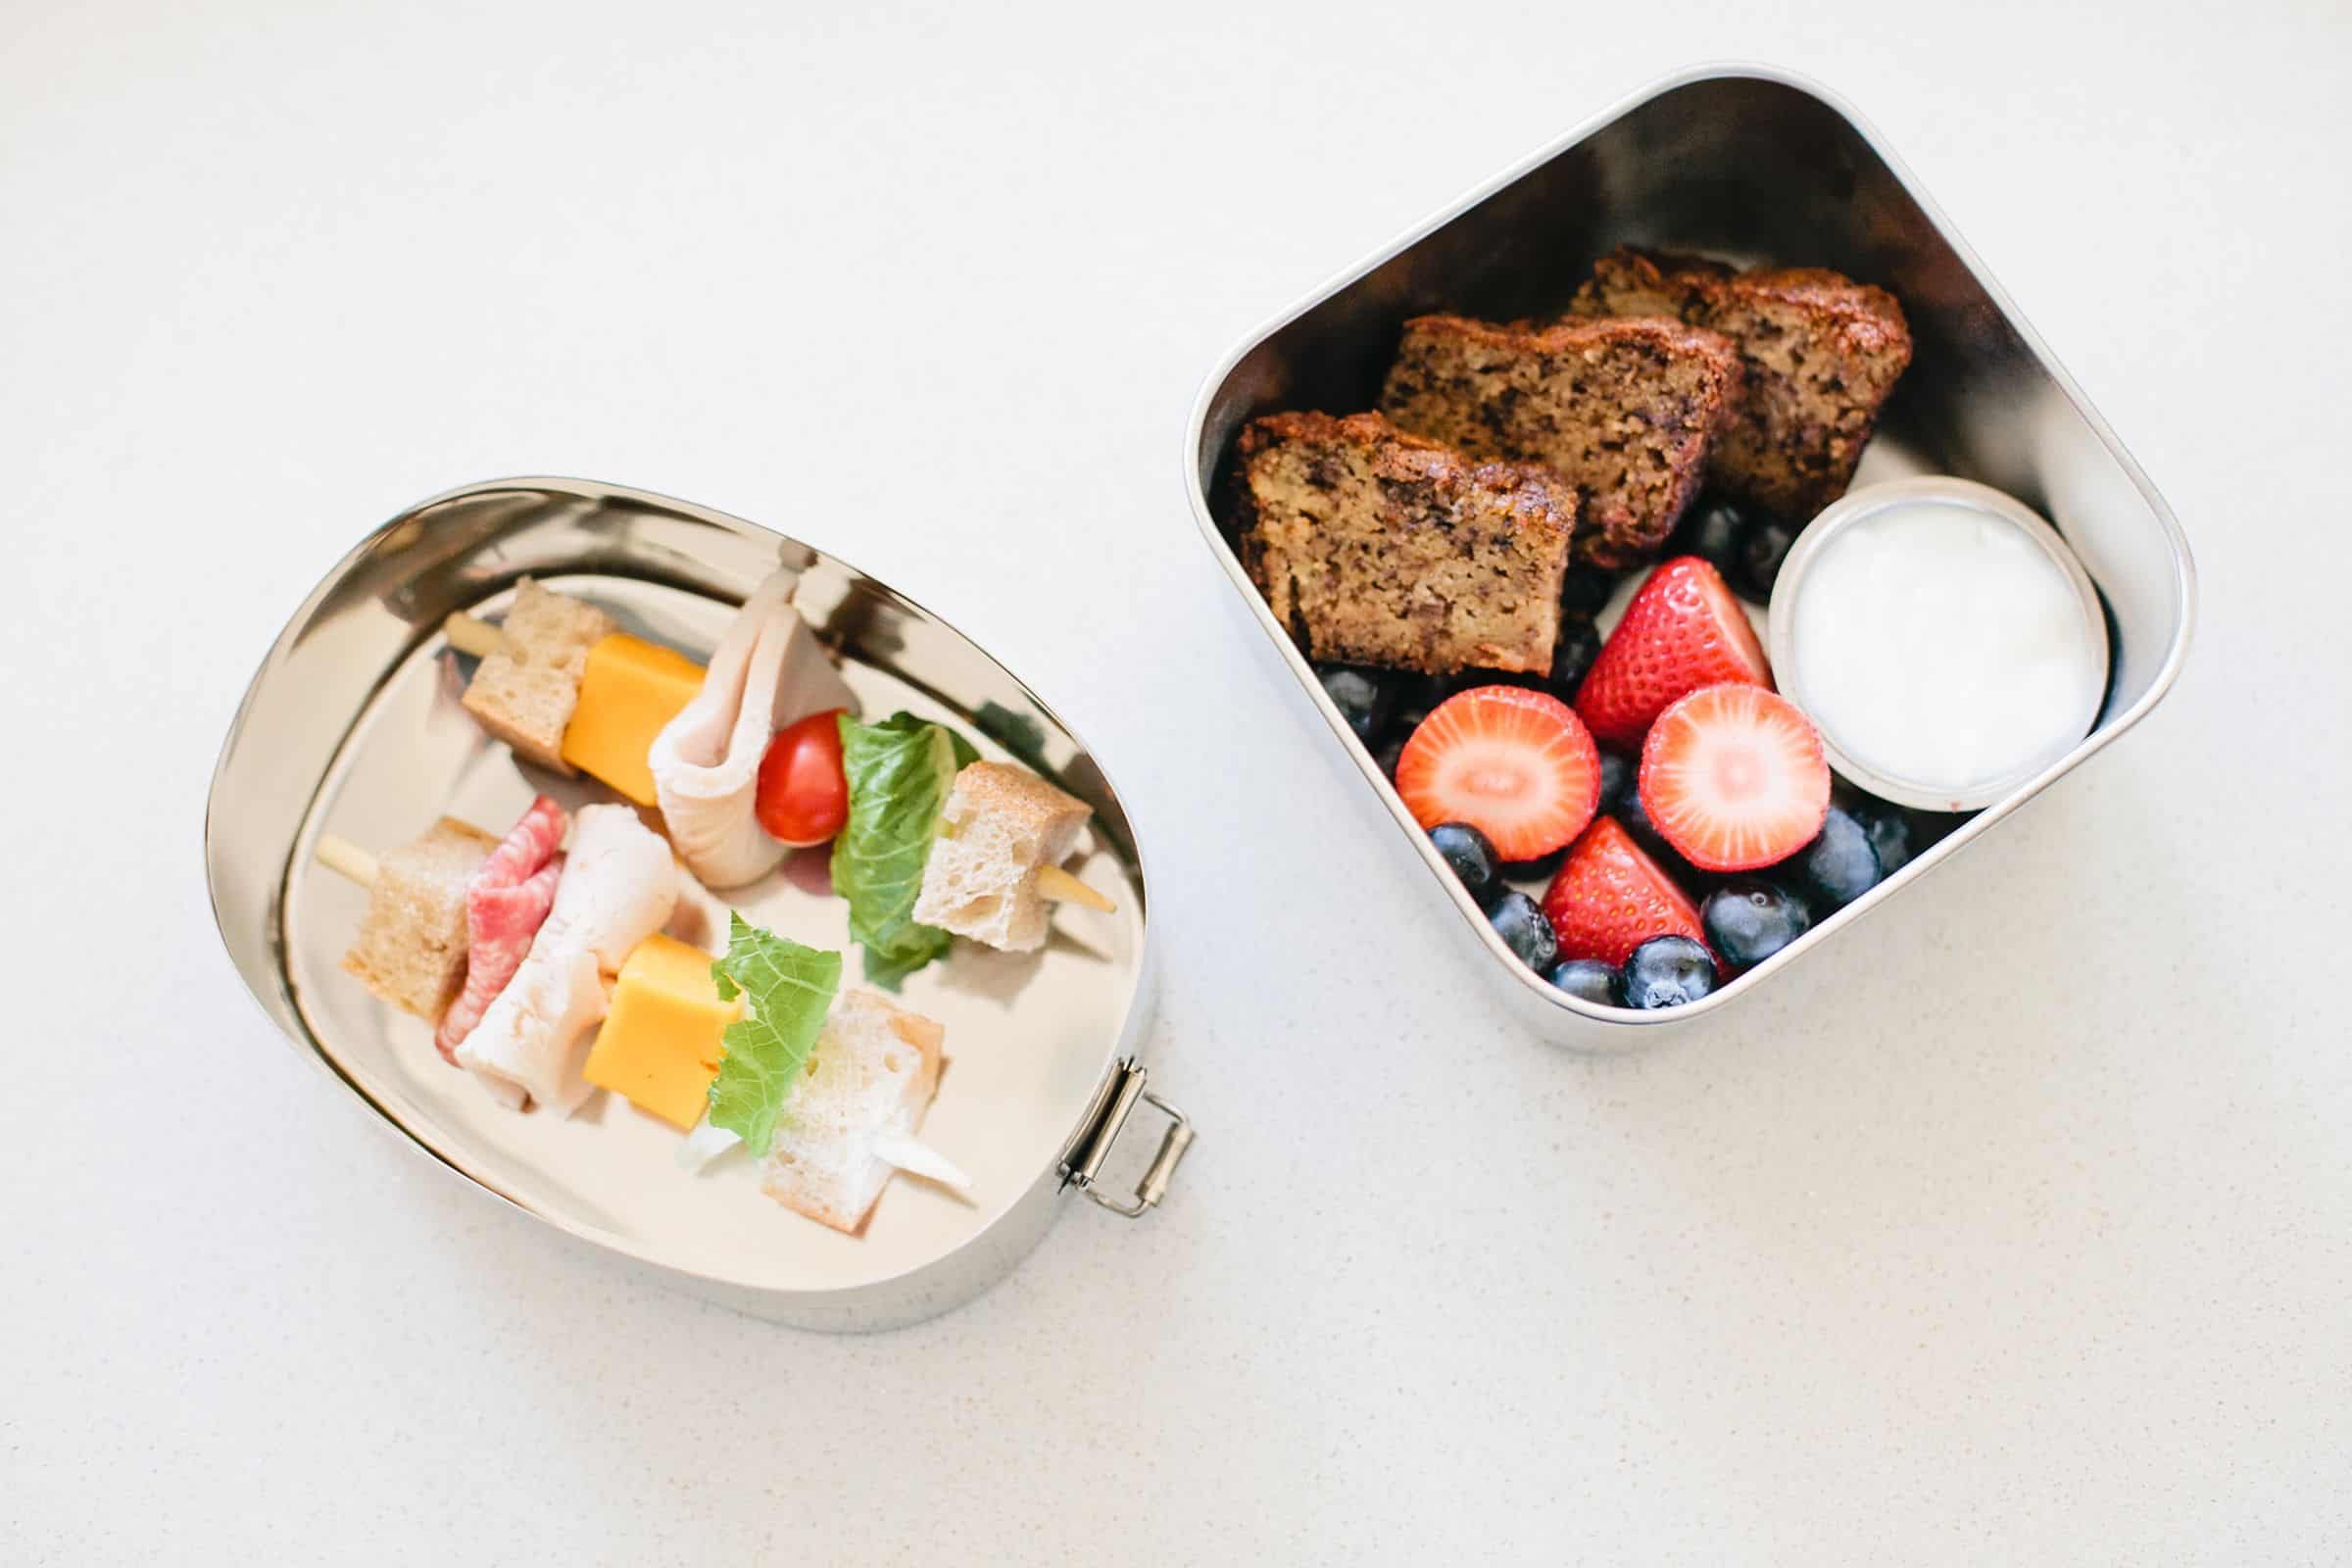 Packed School Lunches by Tiffani Thiessen and Laney Schwartz • Photos by Megan Welker